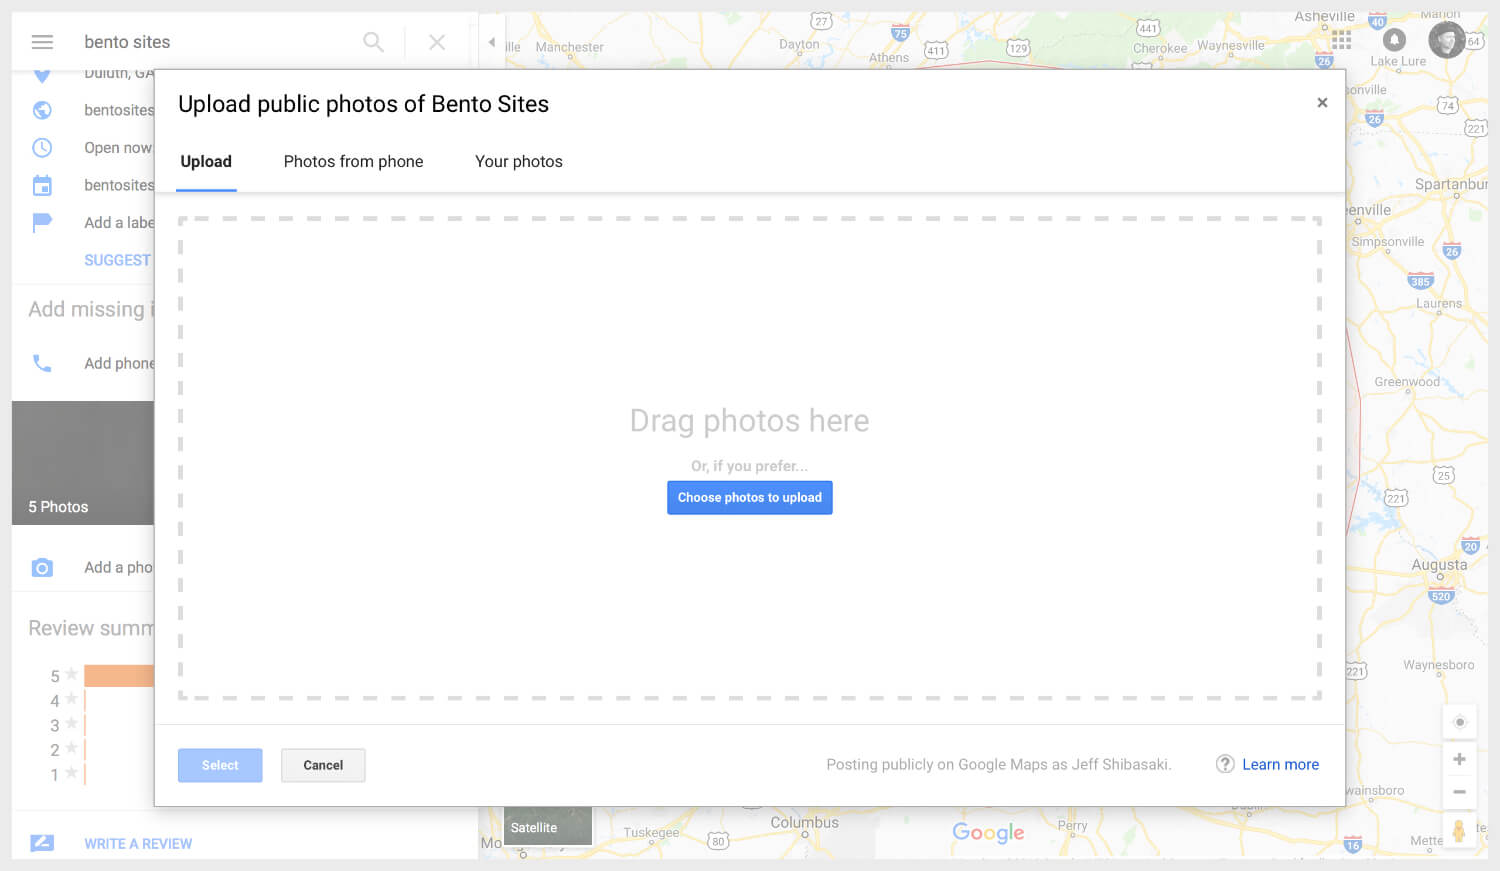 Uploading public photos of a business on Google Maps